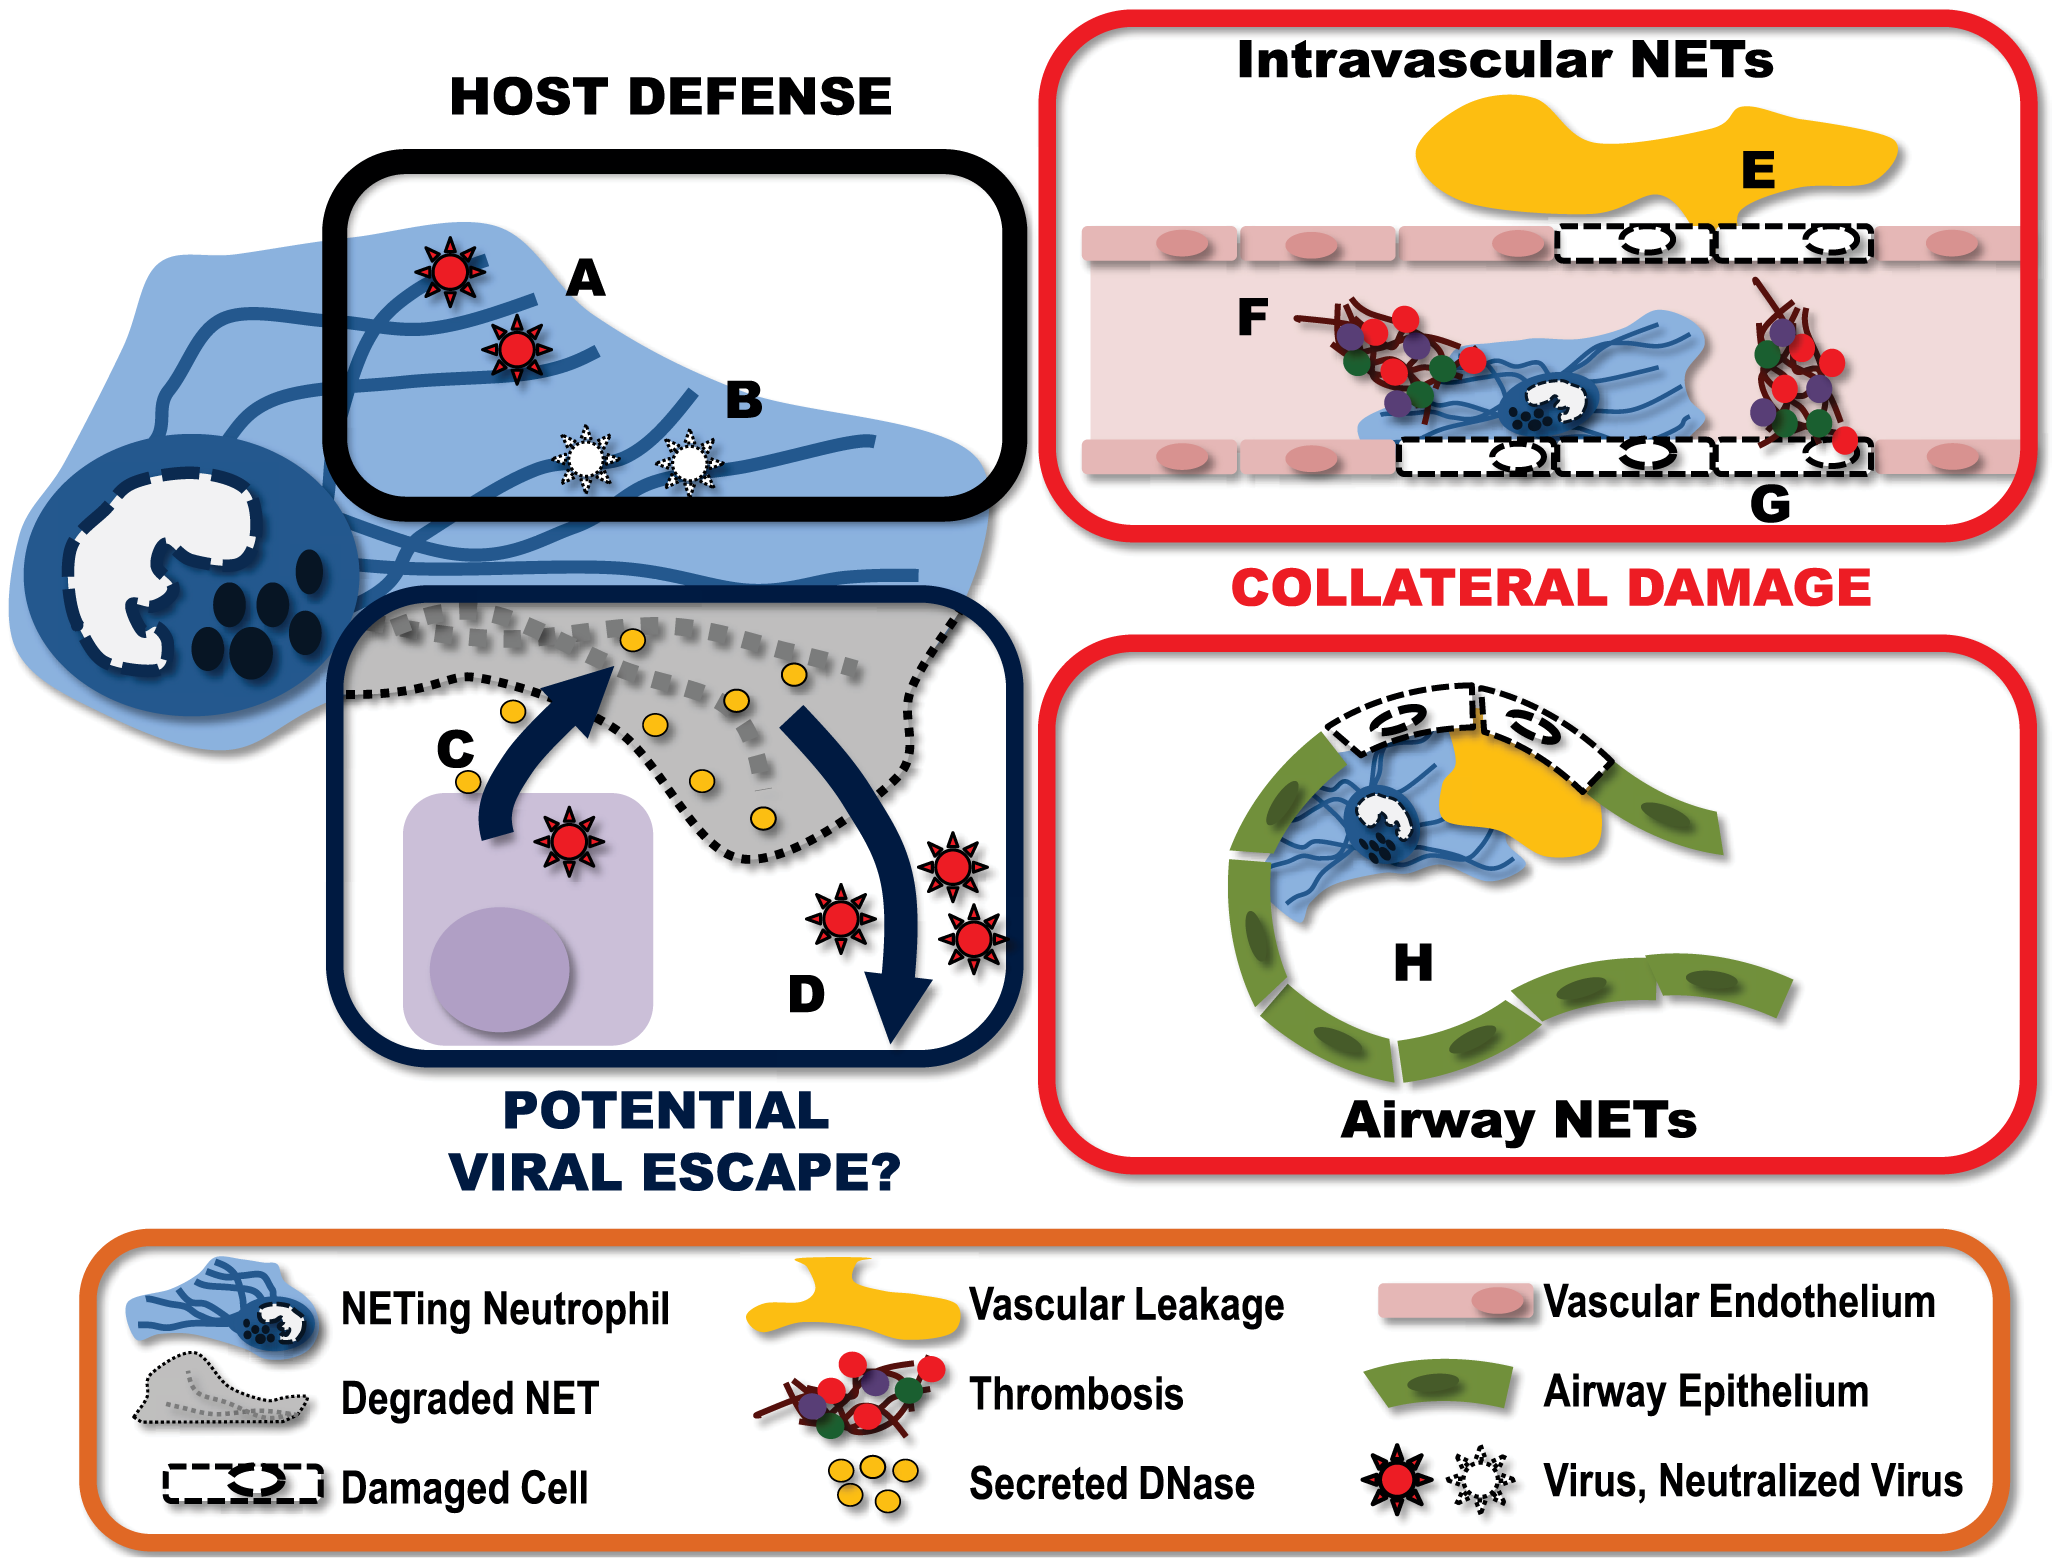 Virally-induced NETs represent a complex and multifaceted component of the host immune response.